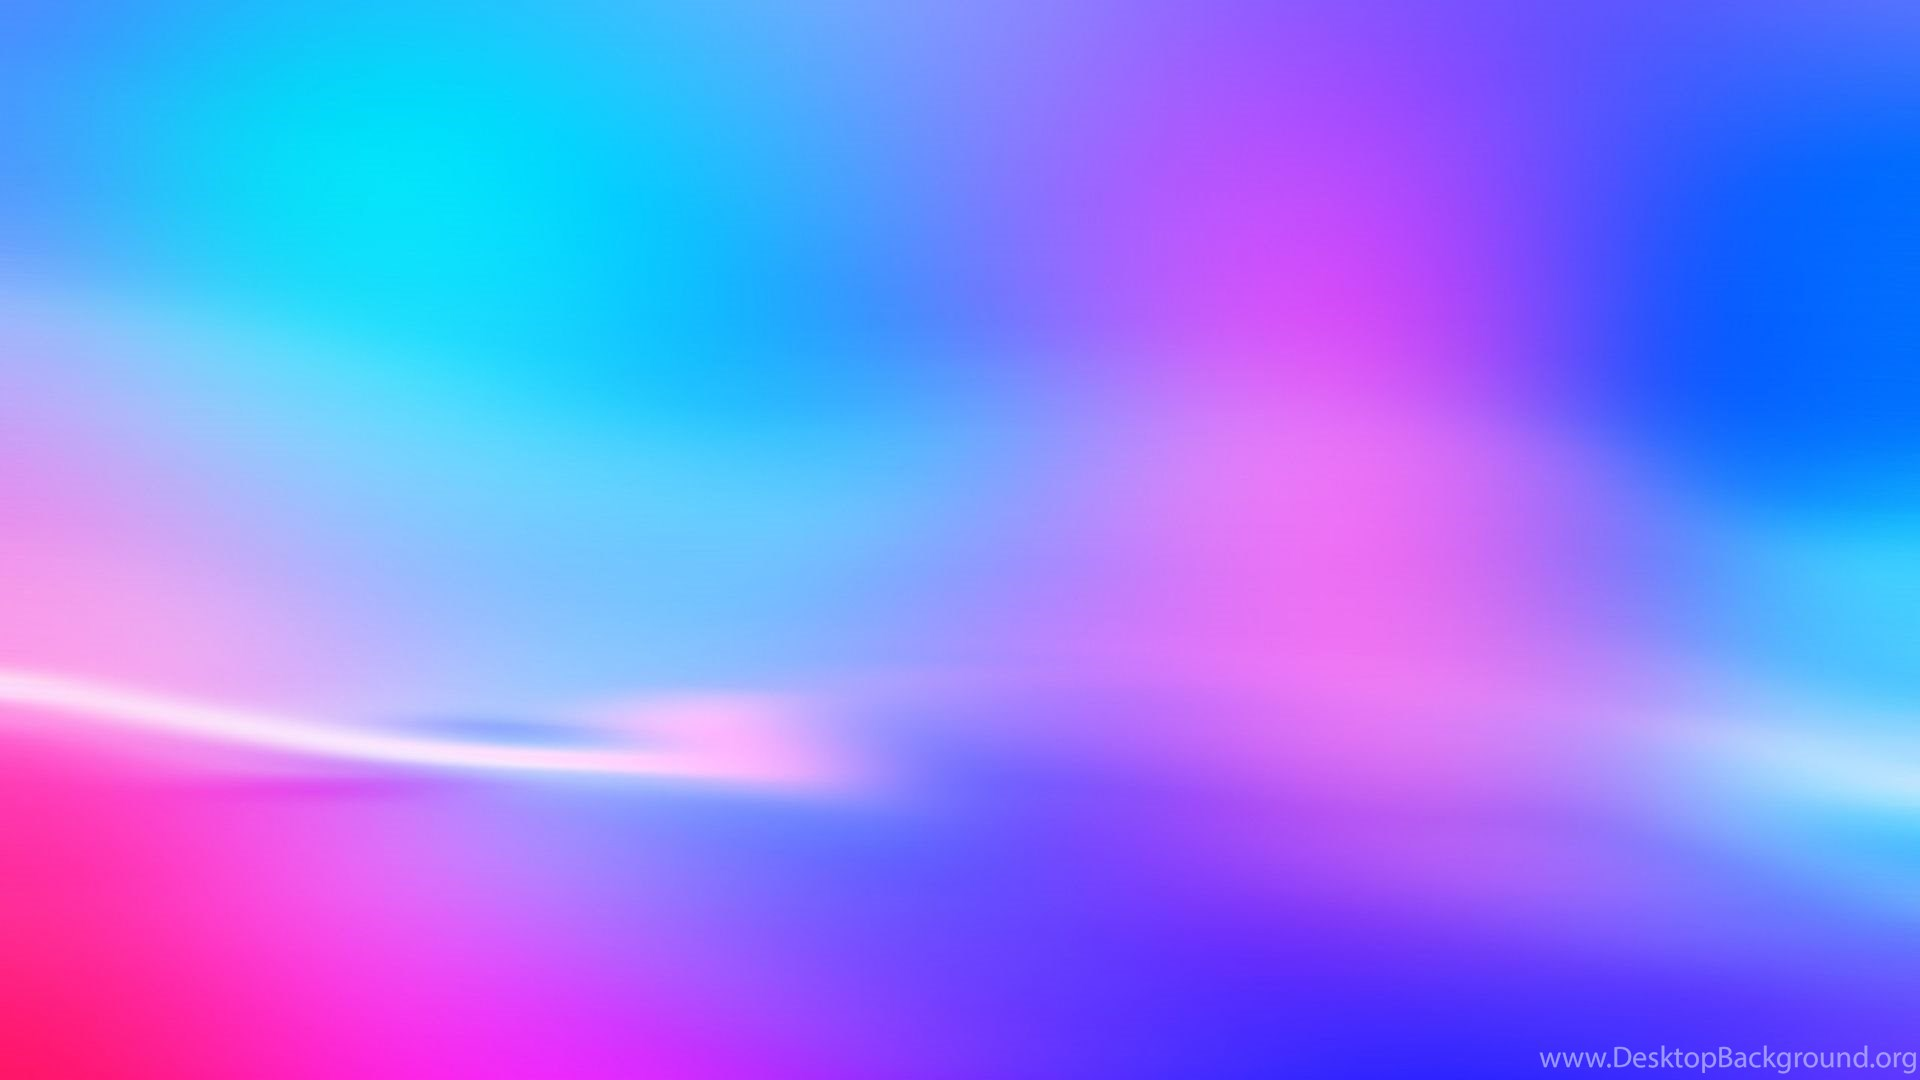 Download Wallpapers 1920x1080 Spot Light Color Bright Full Hd